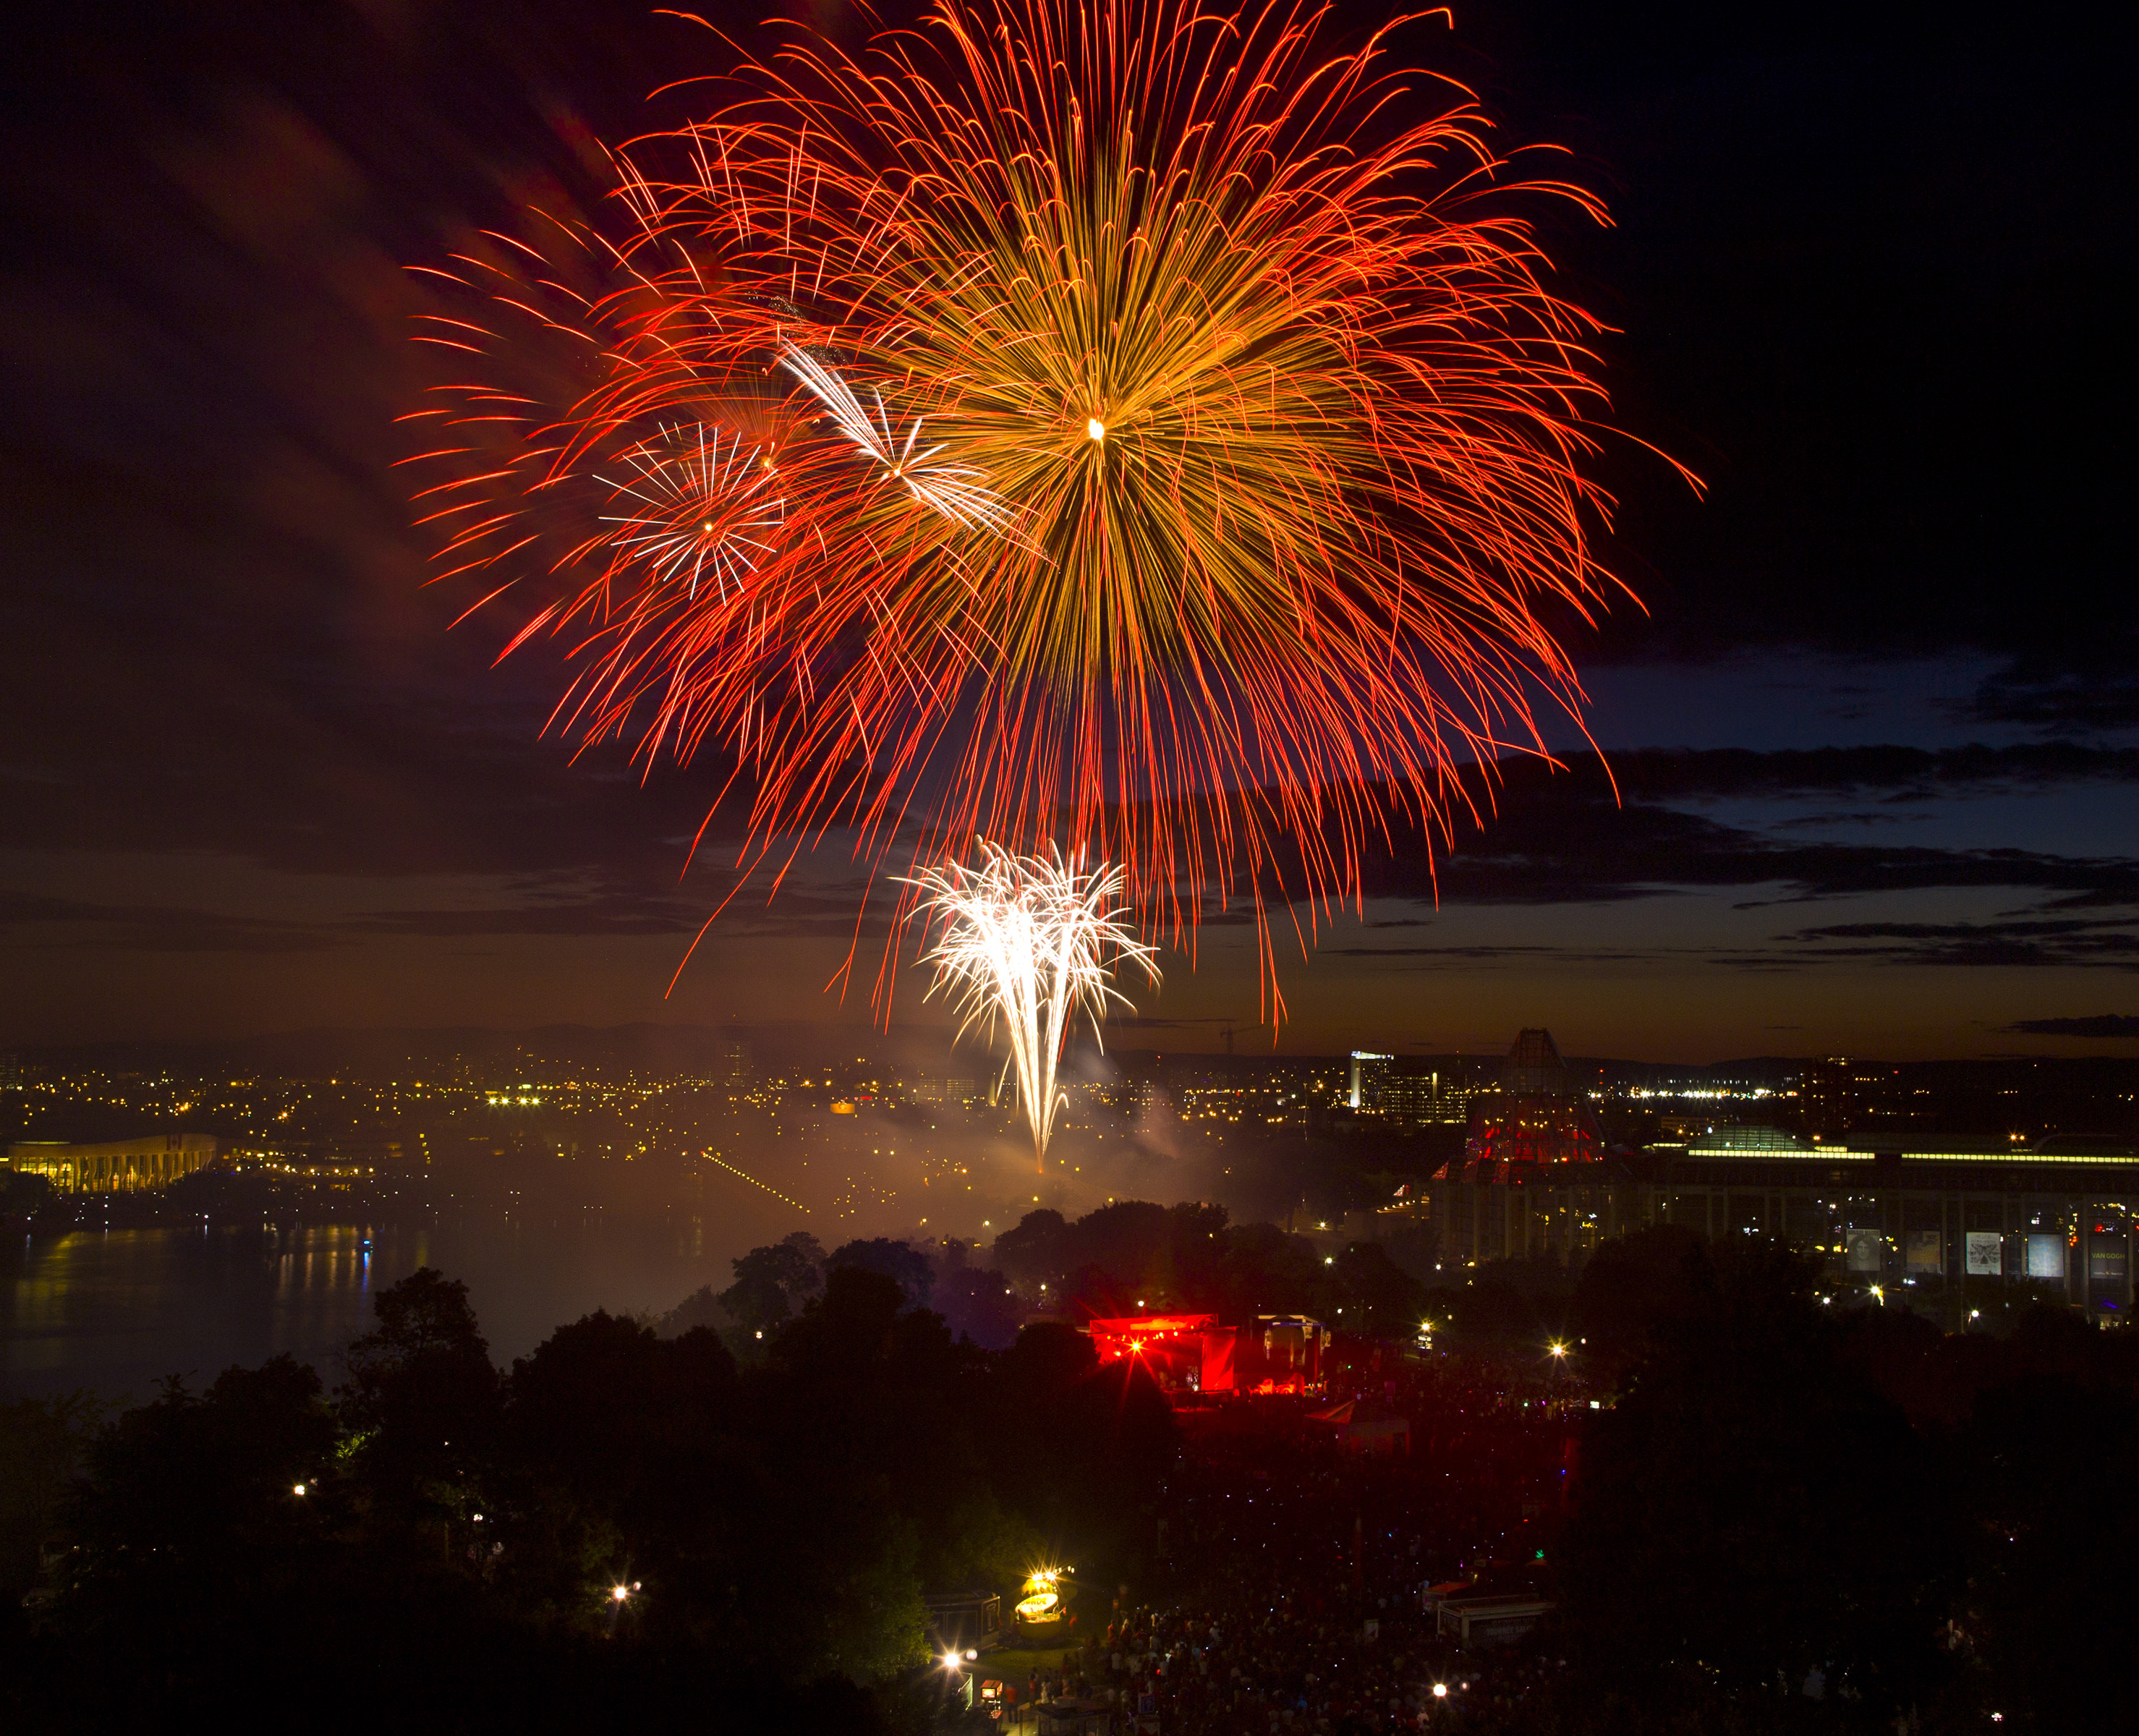 A fireworks display over the Alexandra Bridge and National Gallery as viewed from Parliament Hill as thousands gather to celebrate Canada Day on July 1, 2012, in Ottawa, Canada.